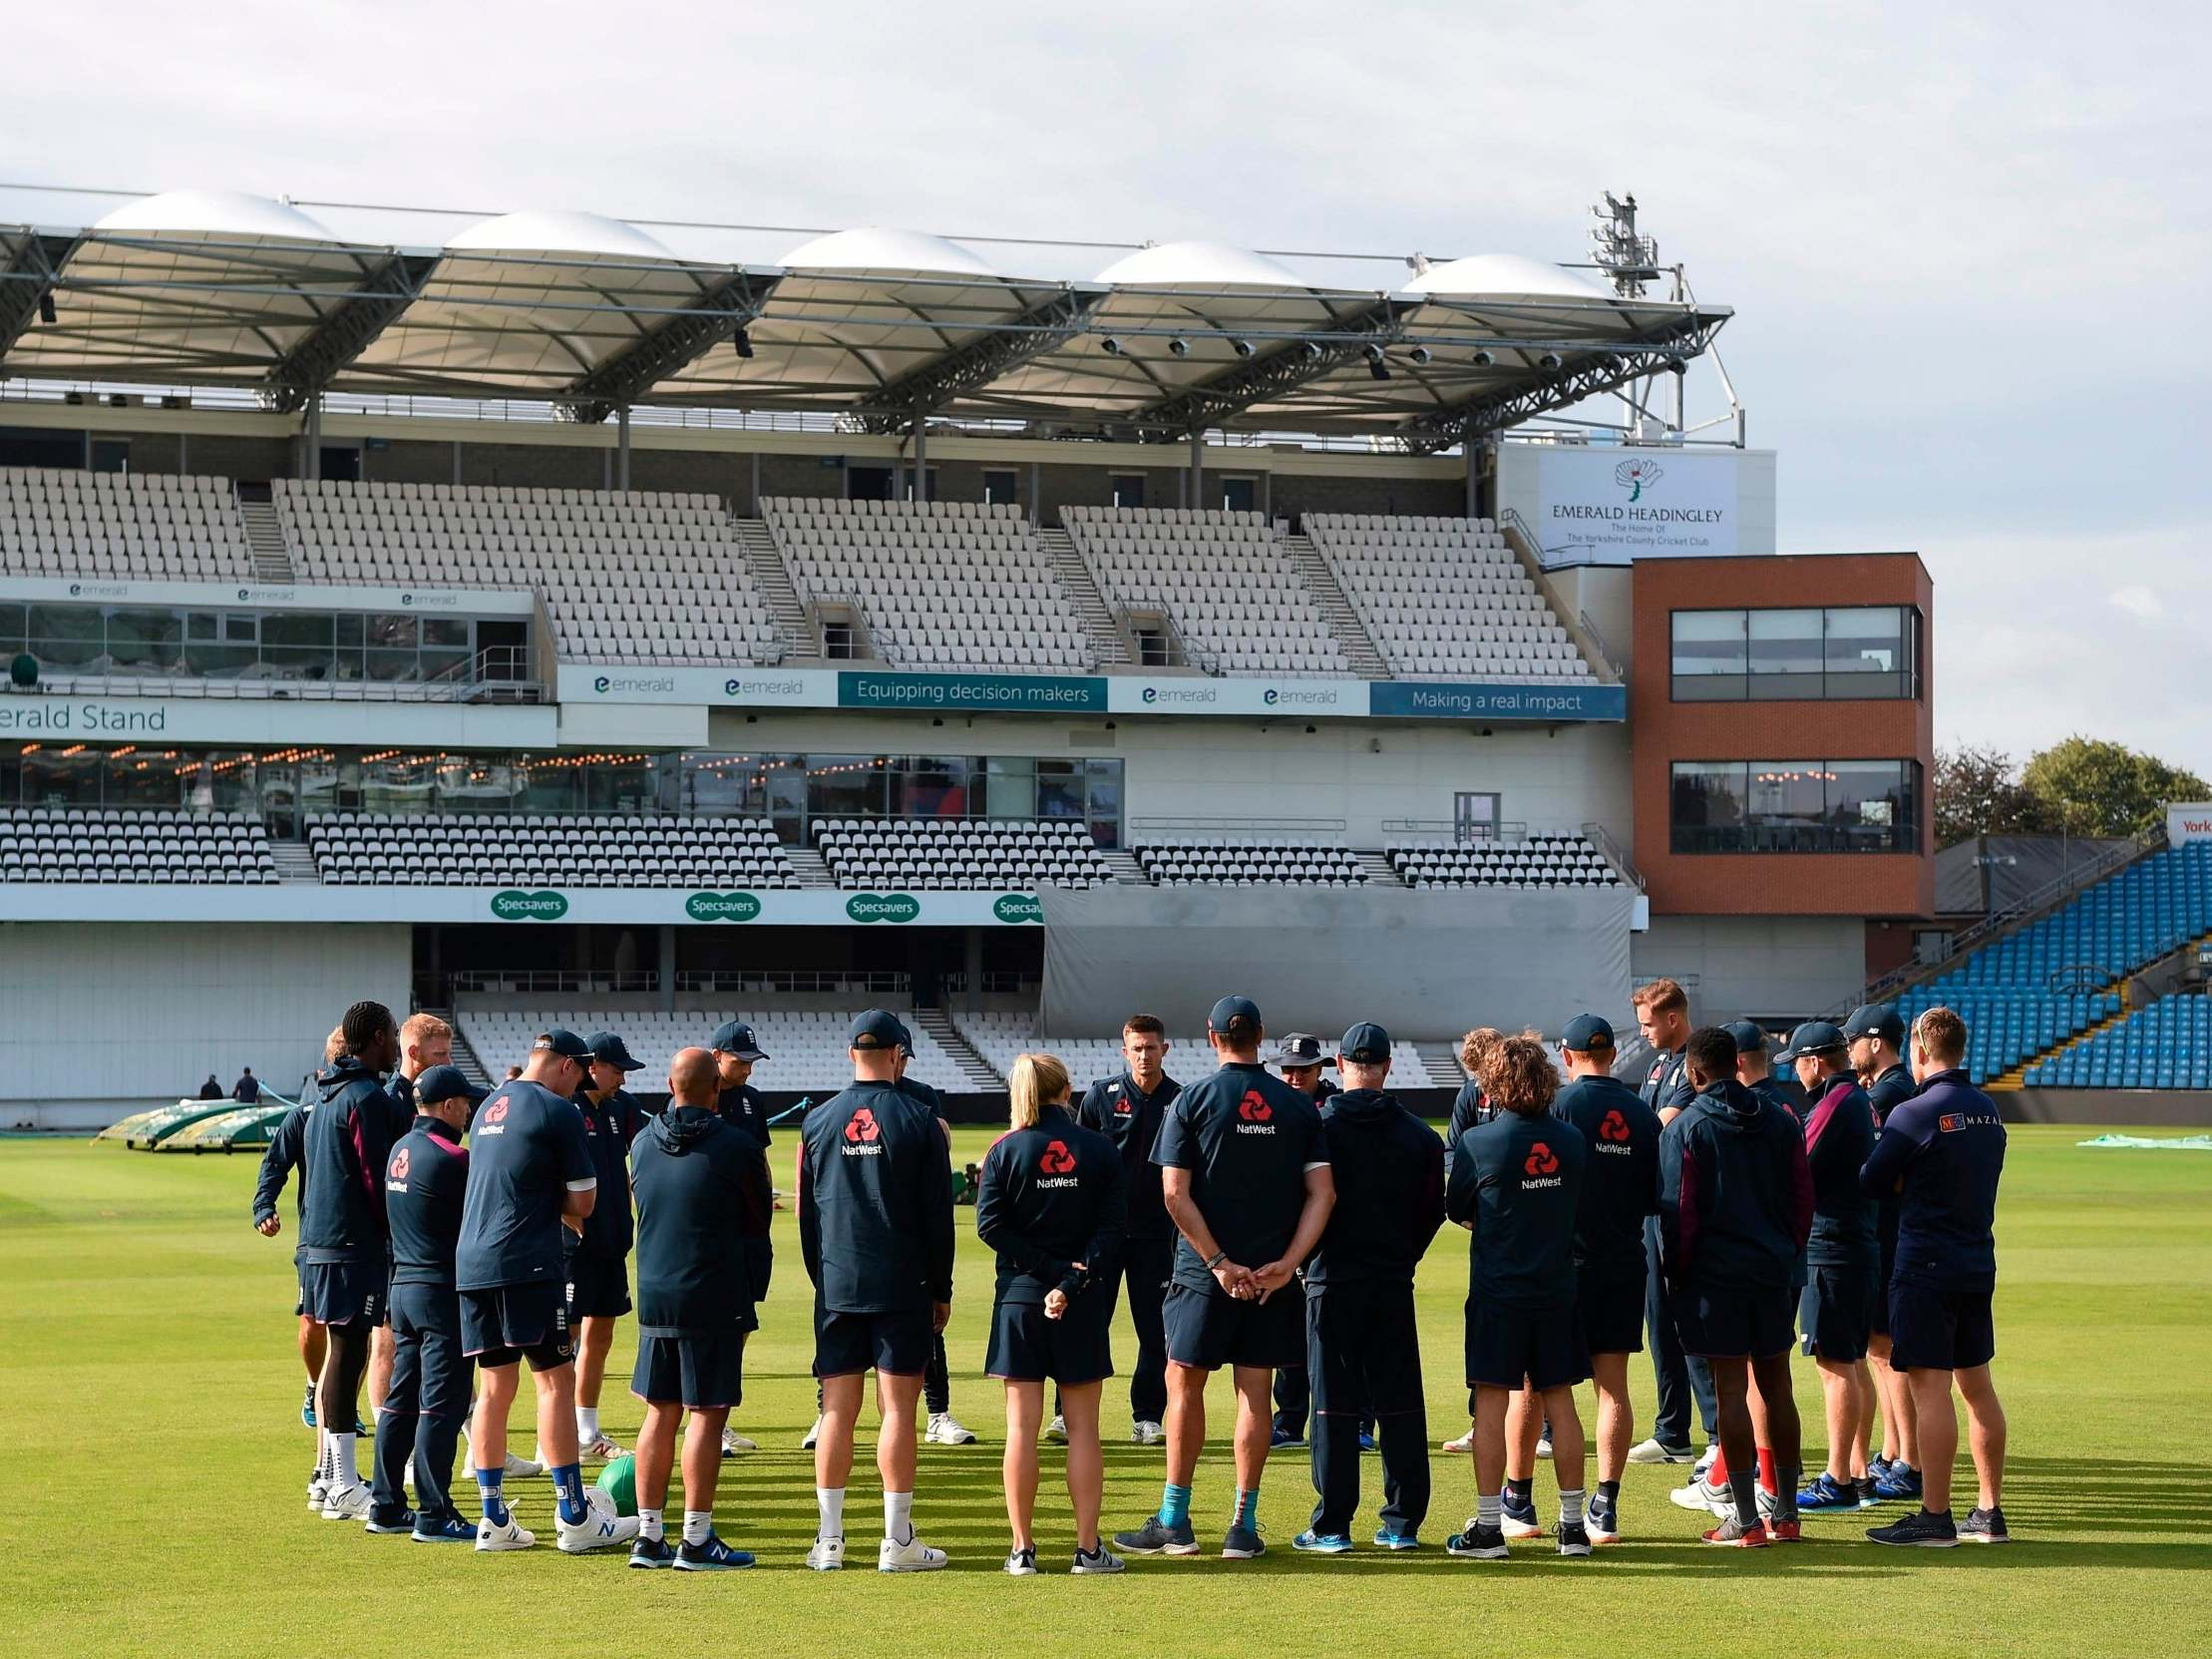 Ashes 2019: England and Australia take series to Headingley where indecision is final